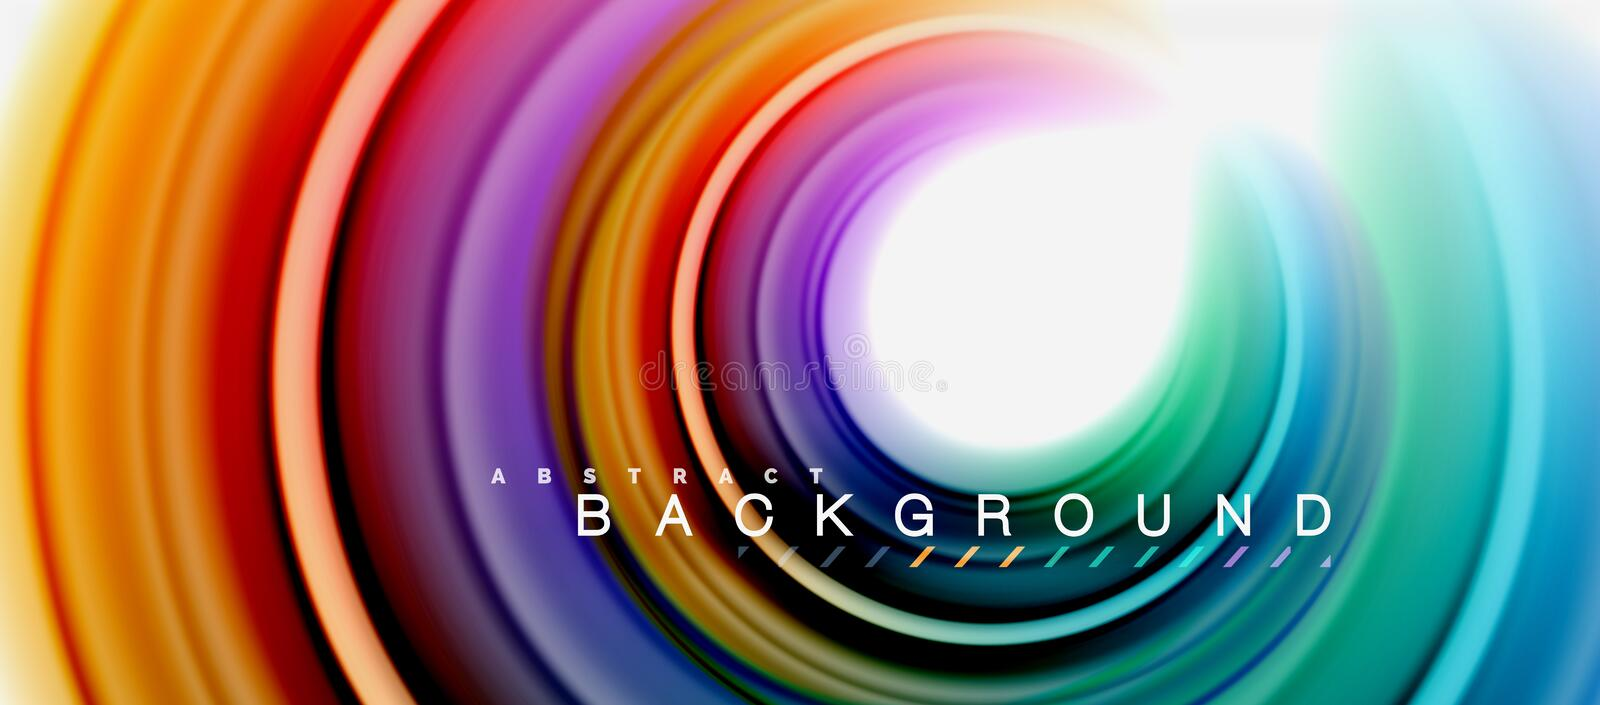 Rainbow fluid abstract swirl shape, twisted liquid colors design, colorful marble or plastic wavy texture background vector illustration